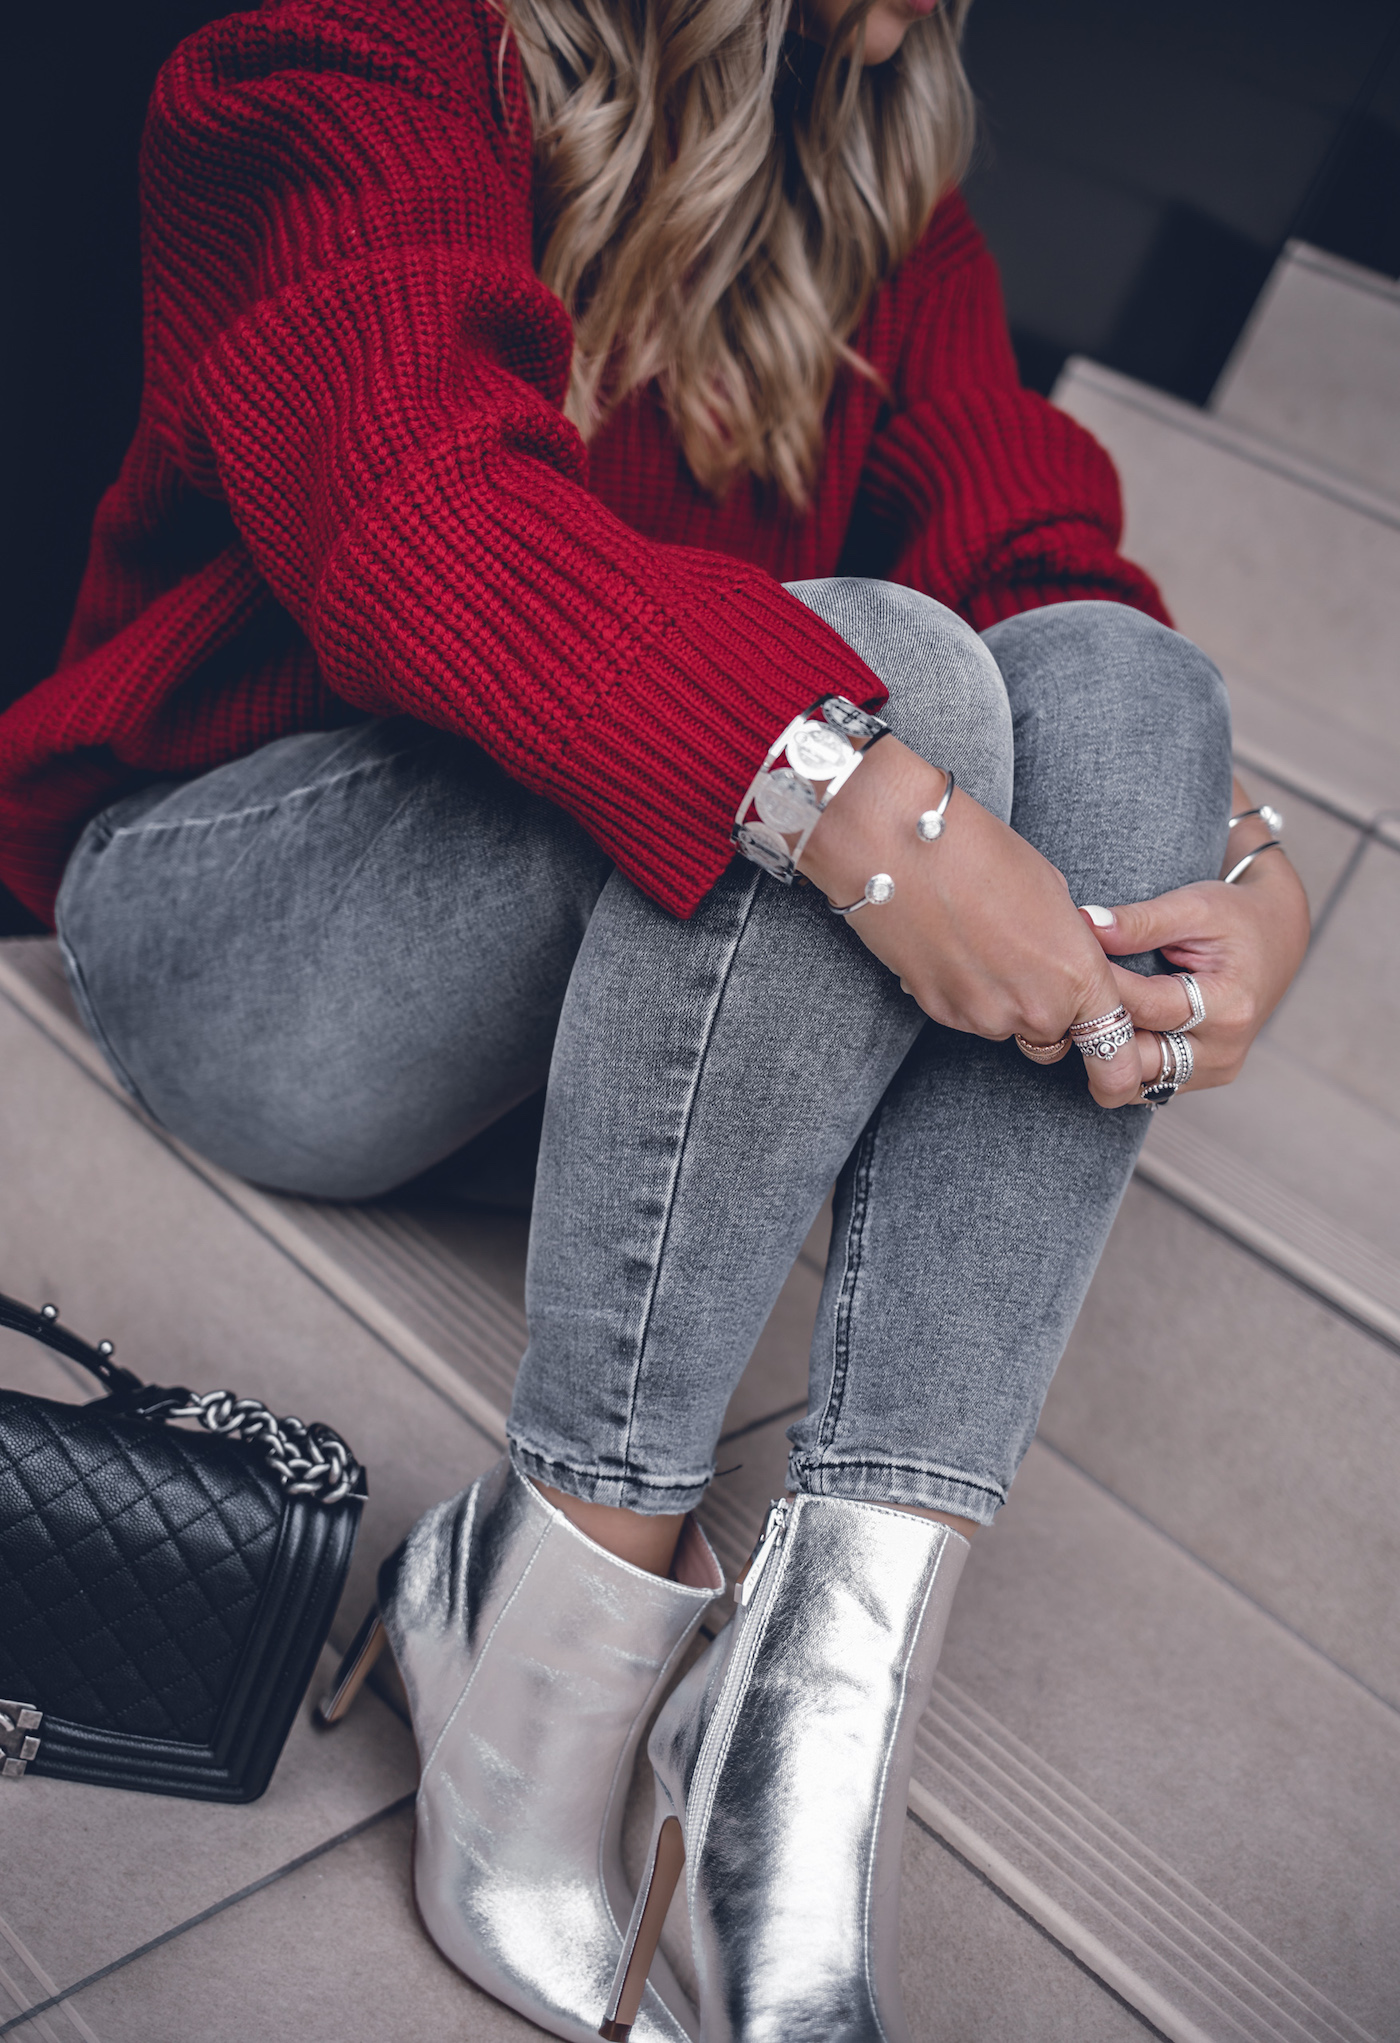 Fall 2017 Fashion Trends Women, Red, Inspiration, Outfits, Street Style Autumn Winter | Want Get Repeat Fashion Blog